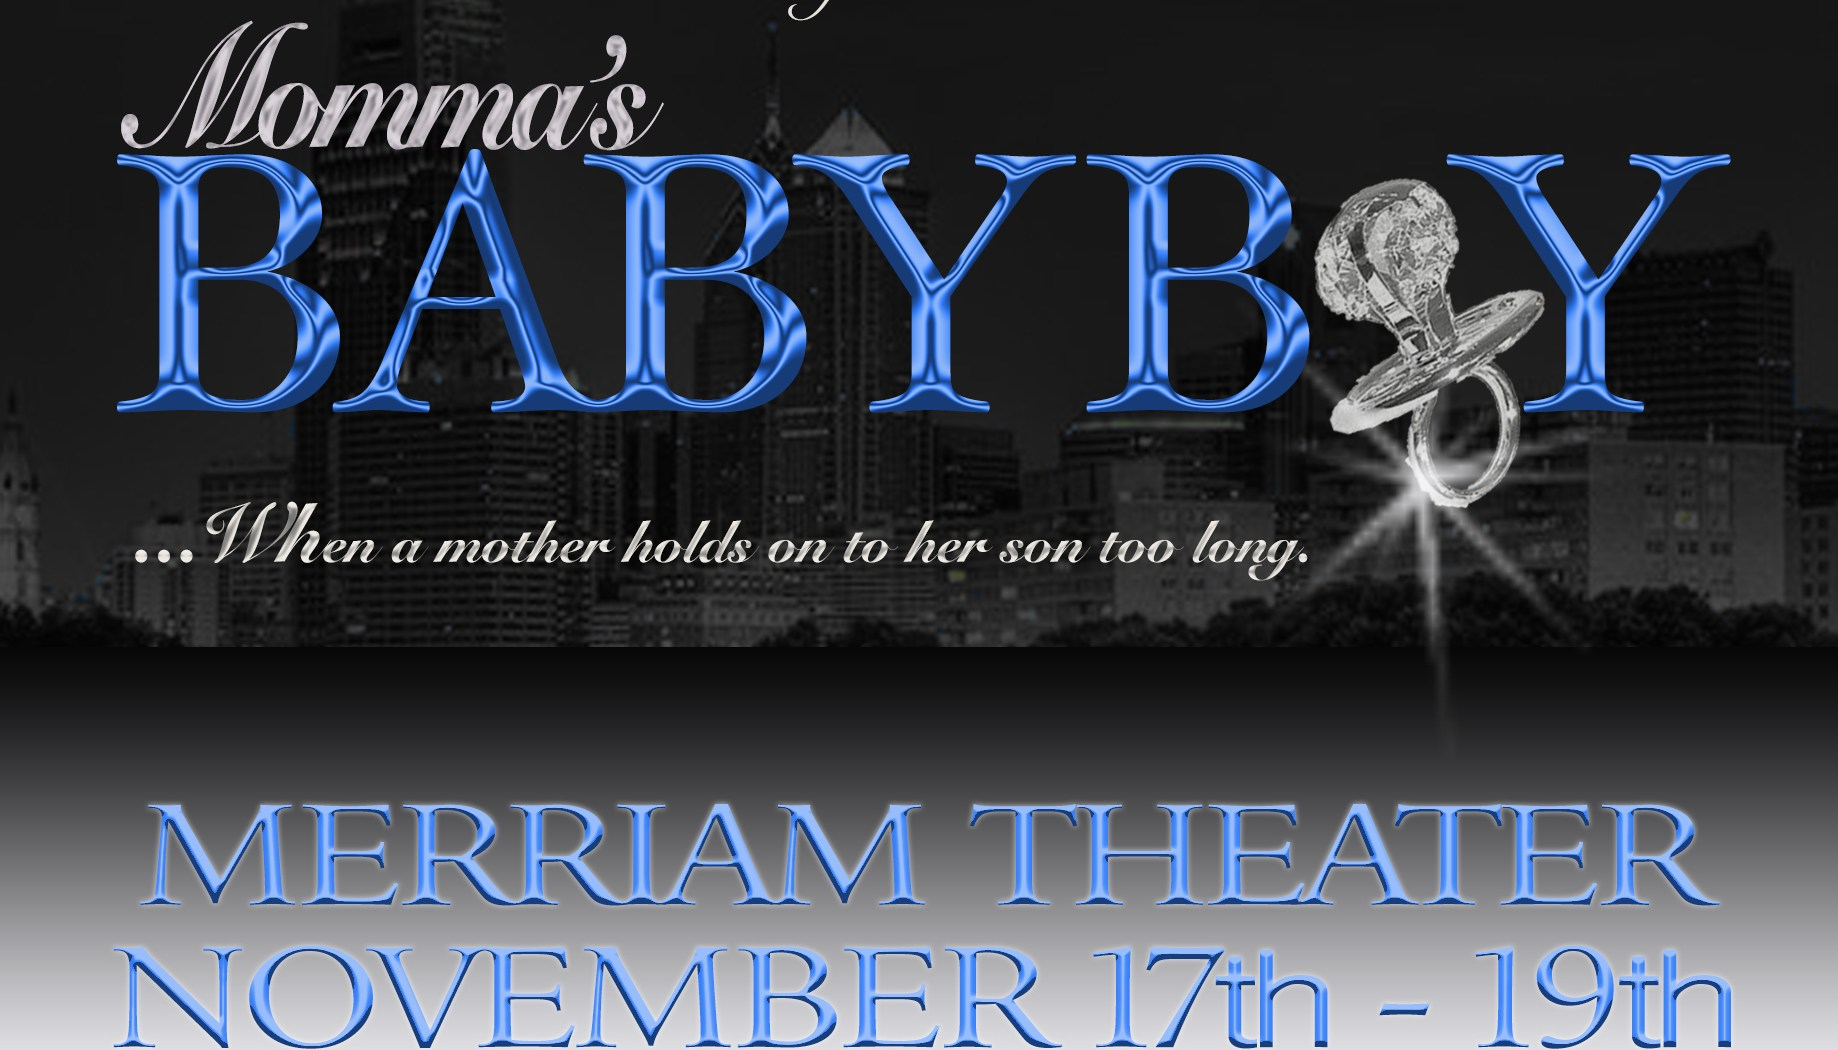 Baby Boy PTP front flyer